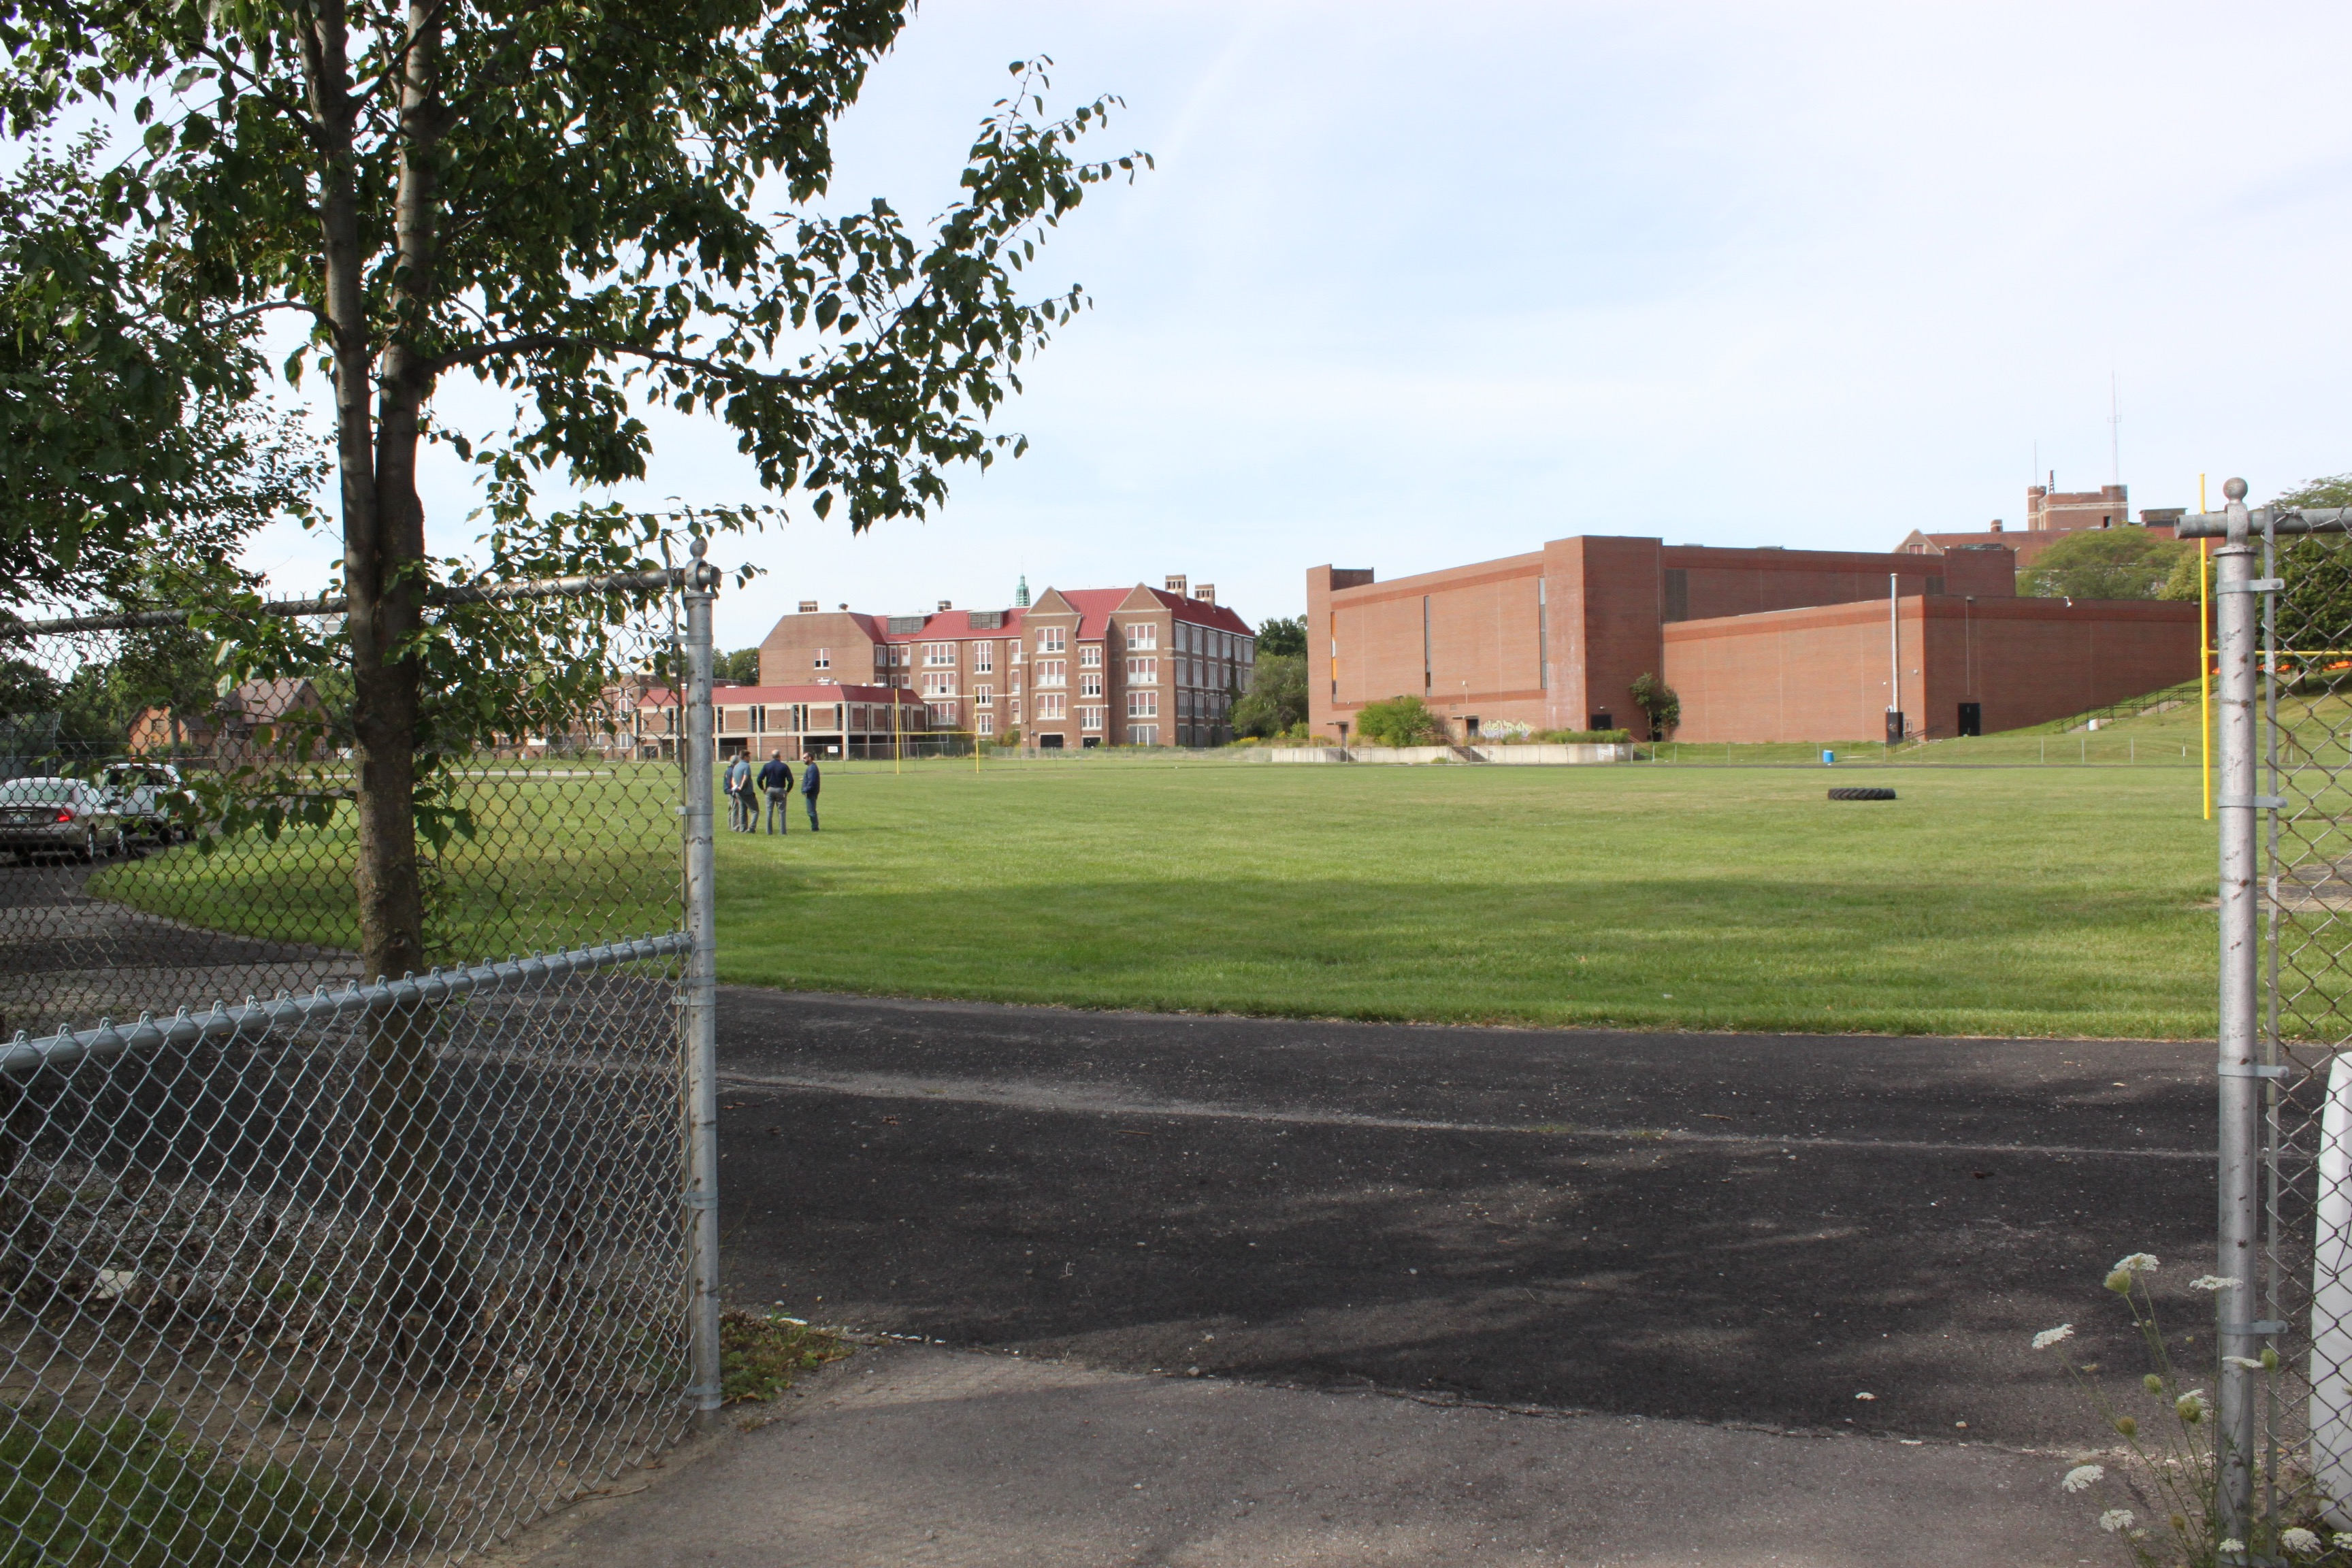 UM-Flint will use the former Central High School athletic field for lacrosse, football, and soccer.